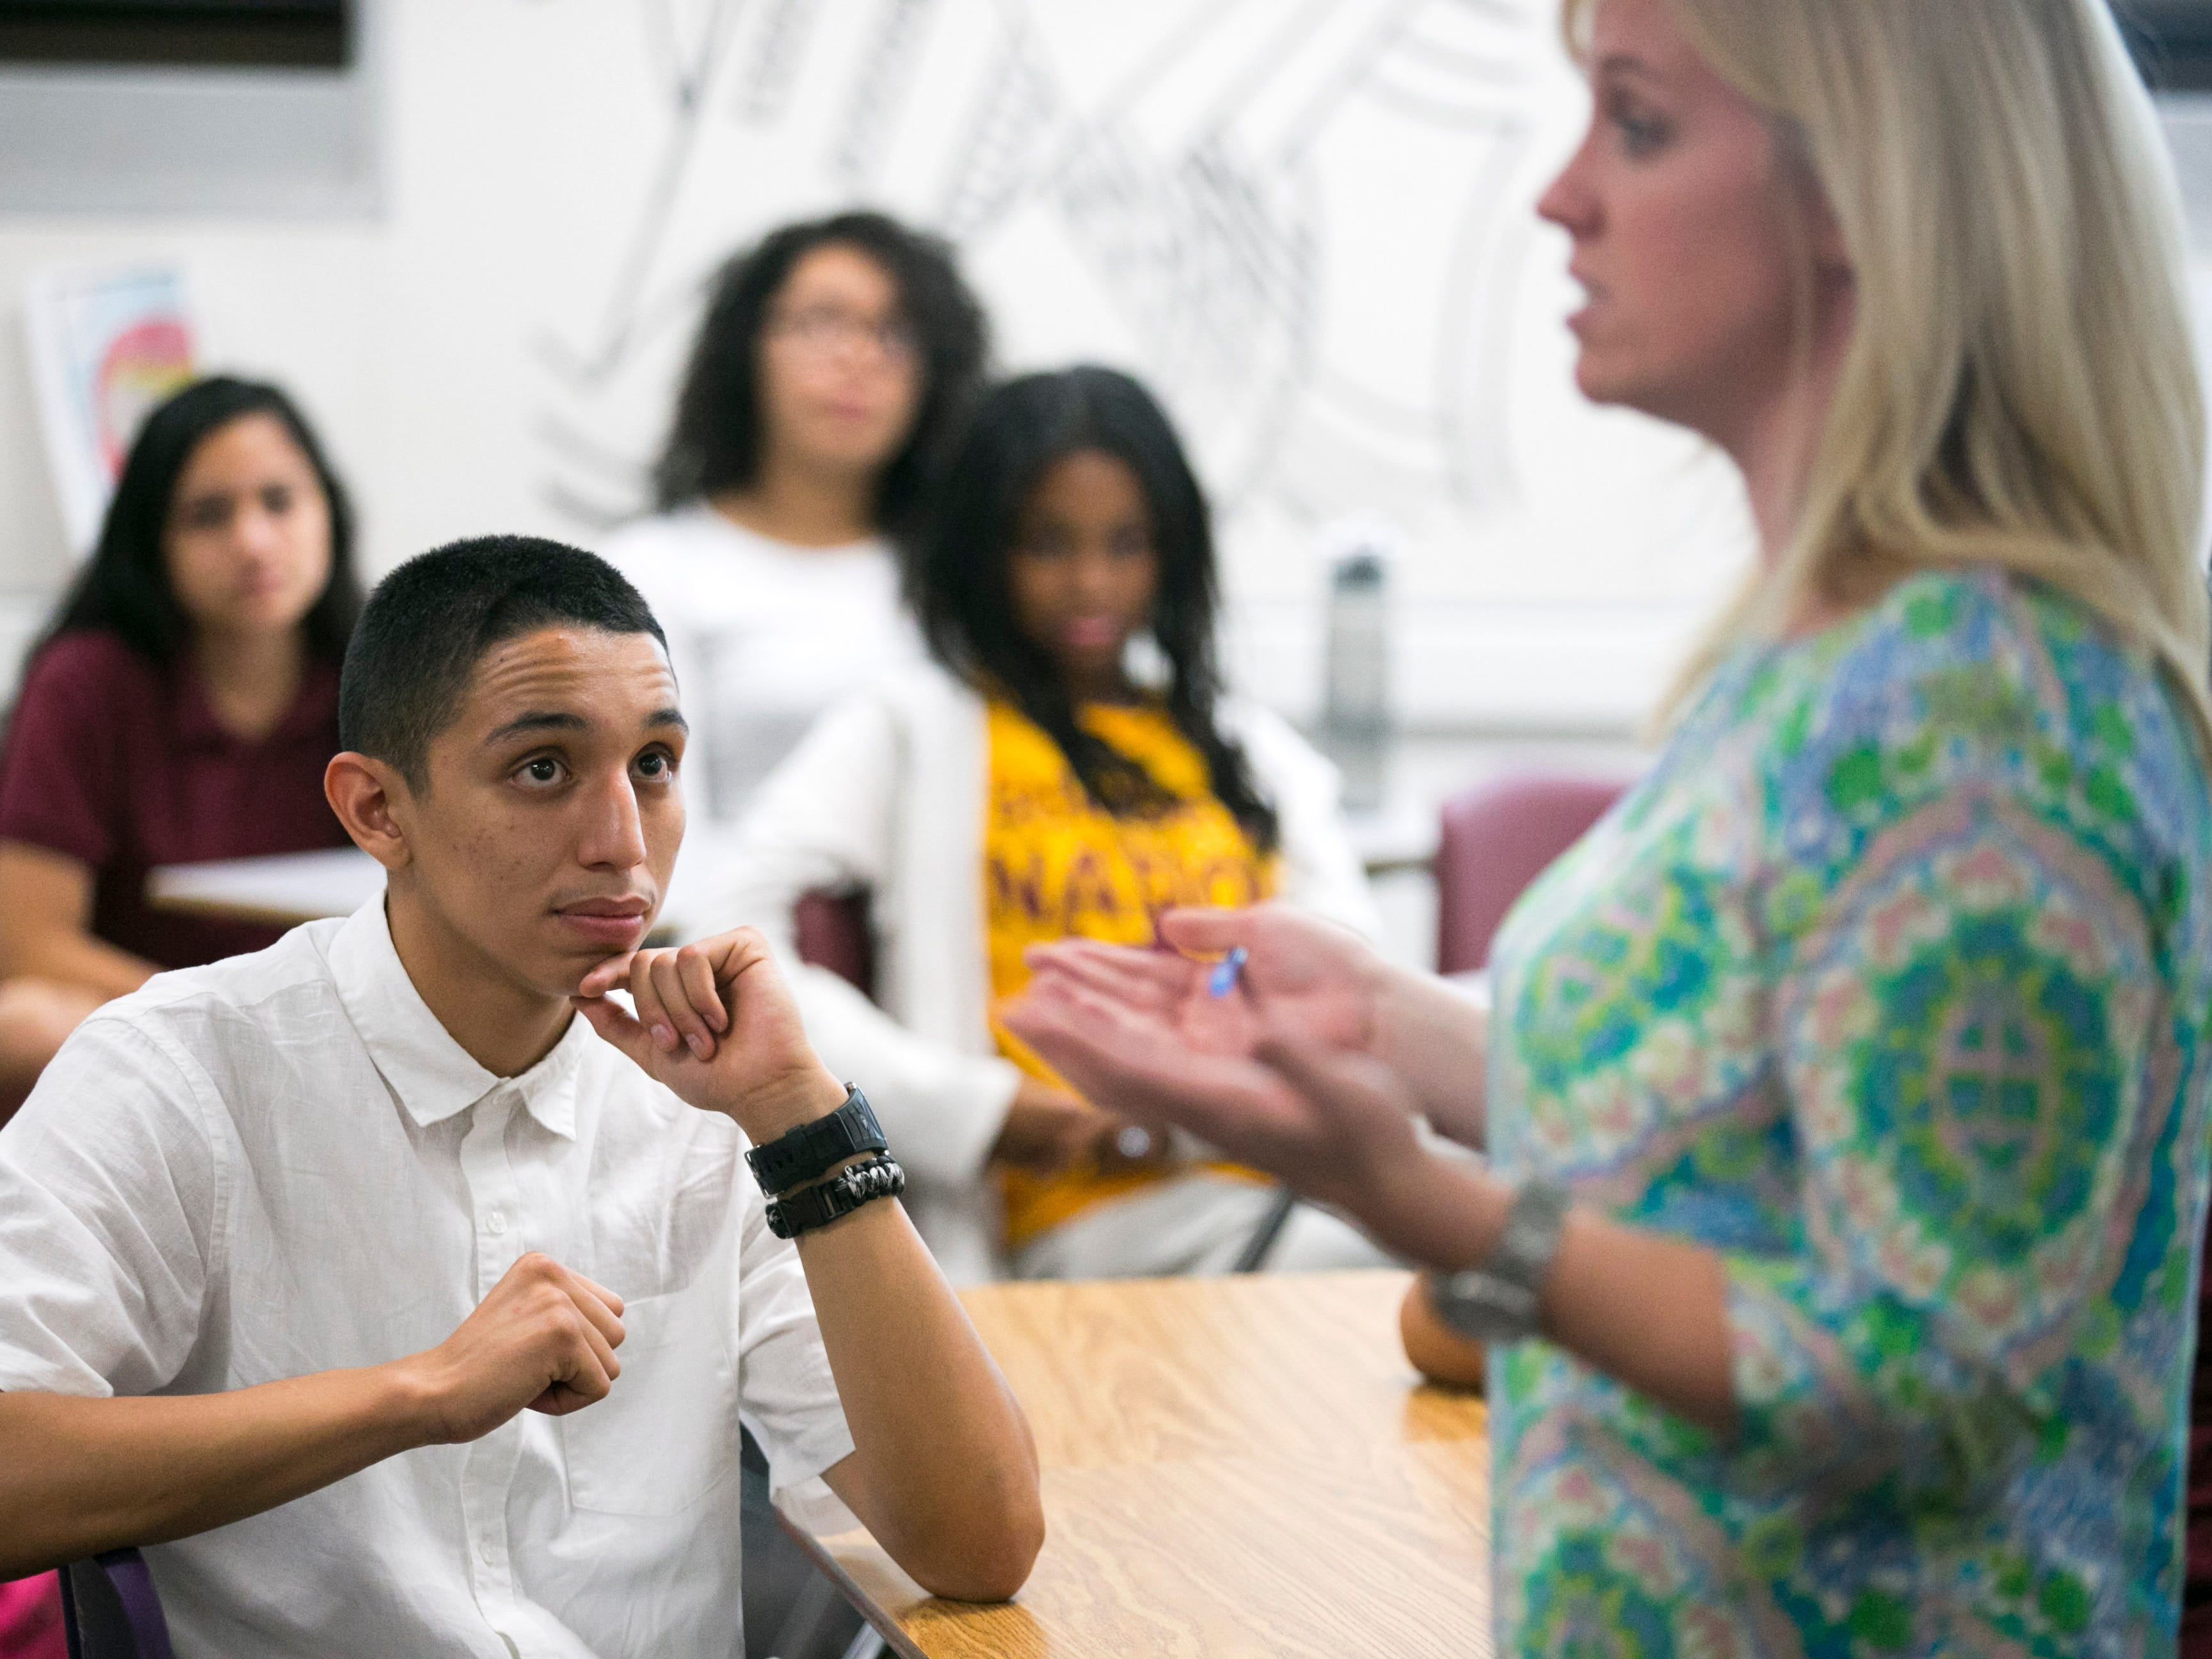 ASU Preparatory Academy senior Brandon Elizalde, 17, listens to math teacher Megan Grothman during class at ASU Preparatory Academy in Phoenix on May 26, 2015.